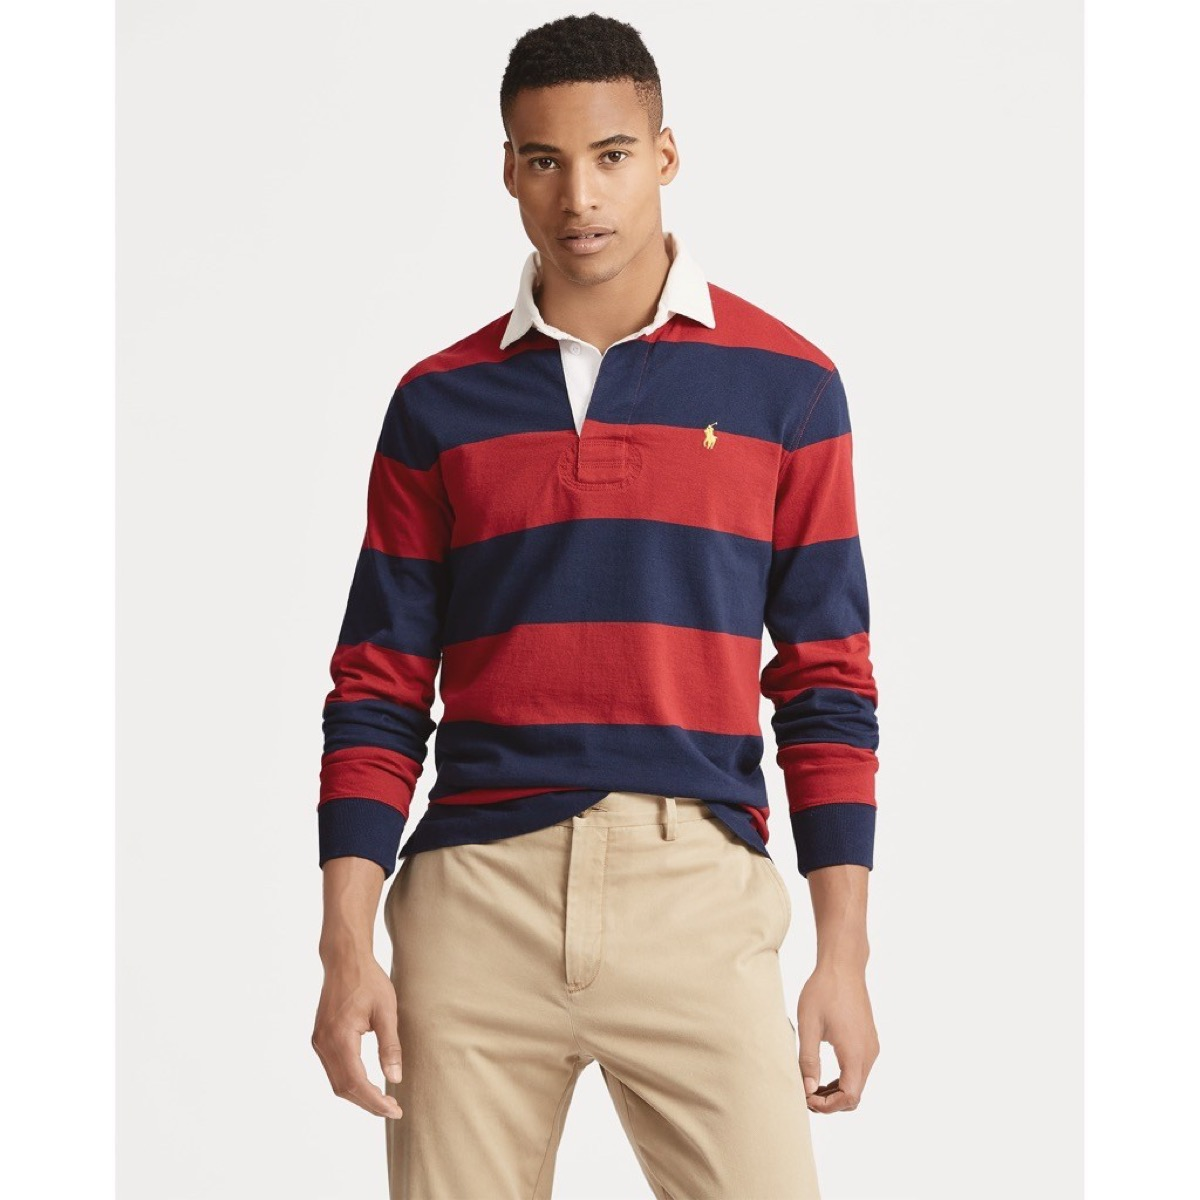 young man wearing red and blue striped rugby shirt